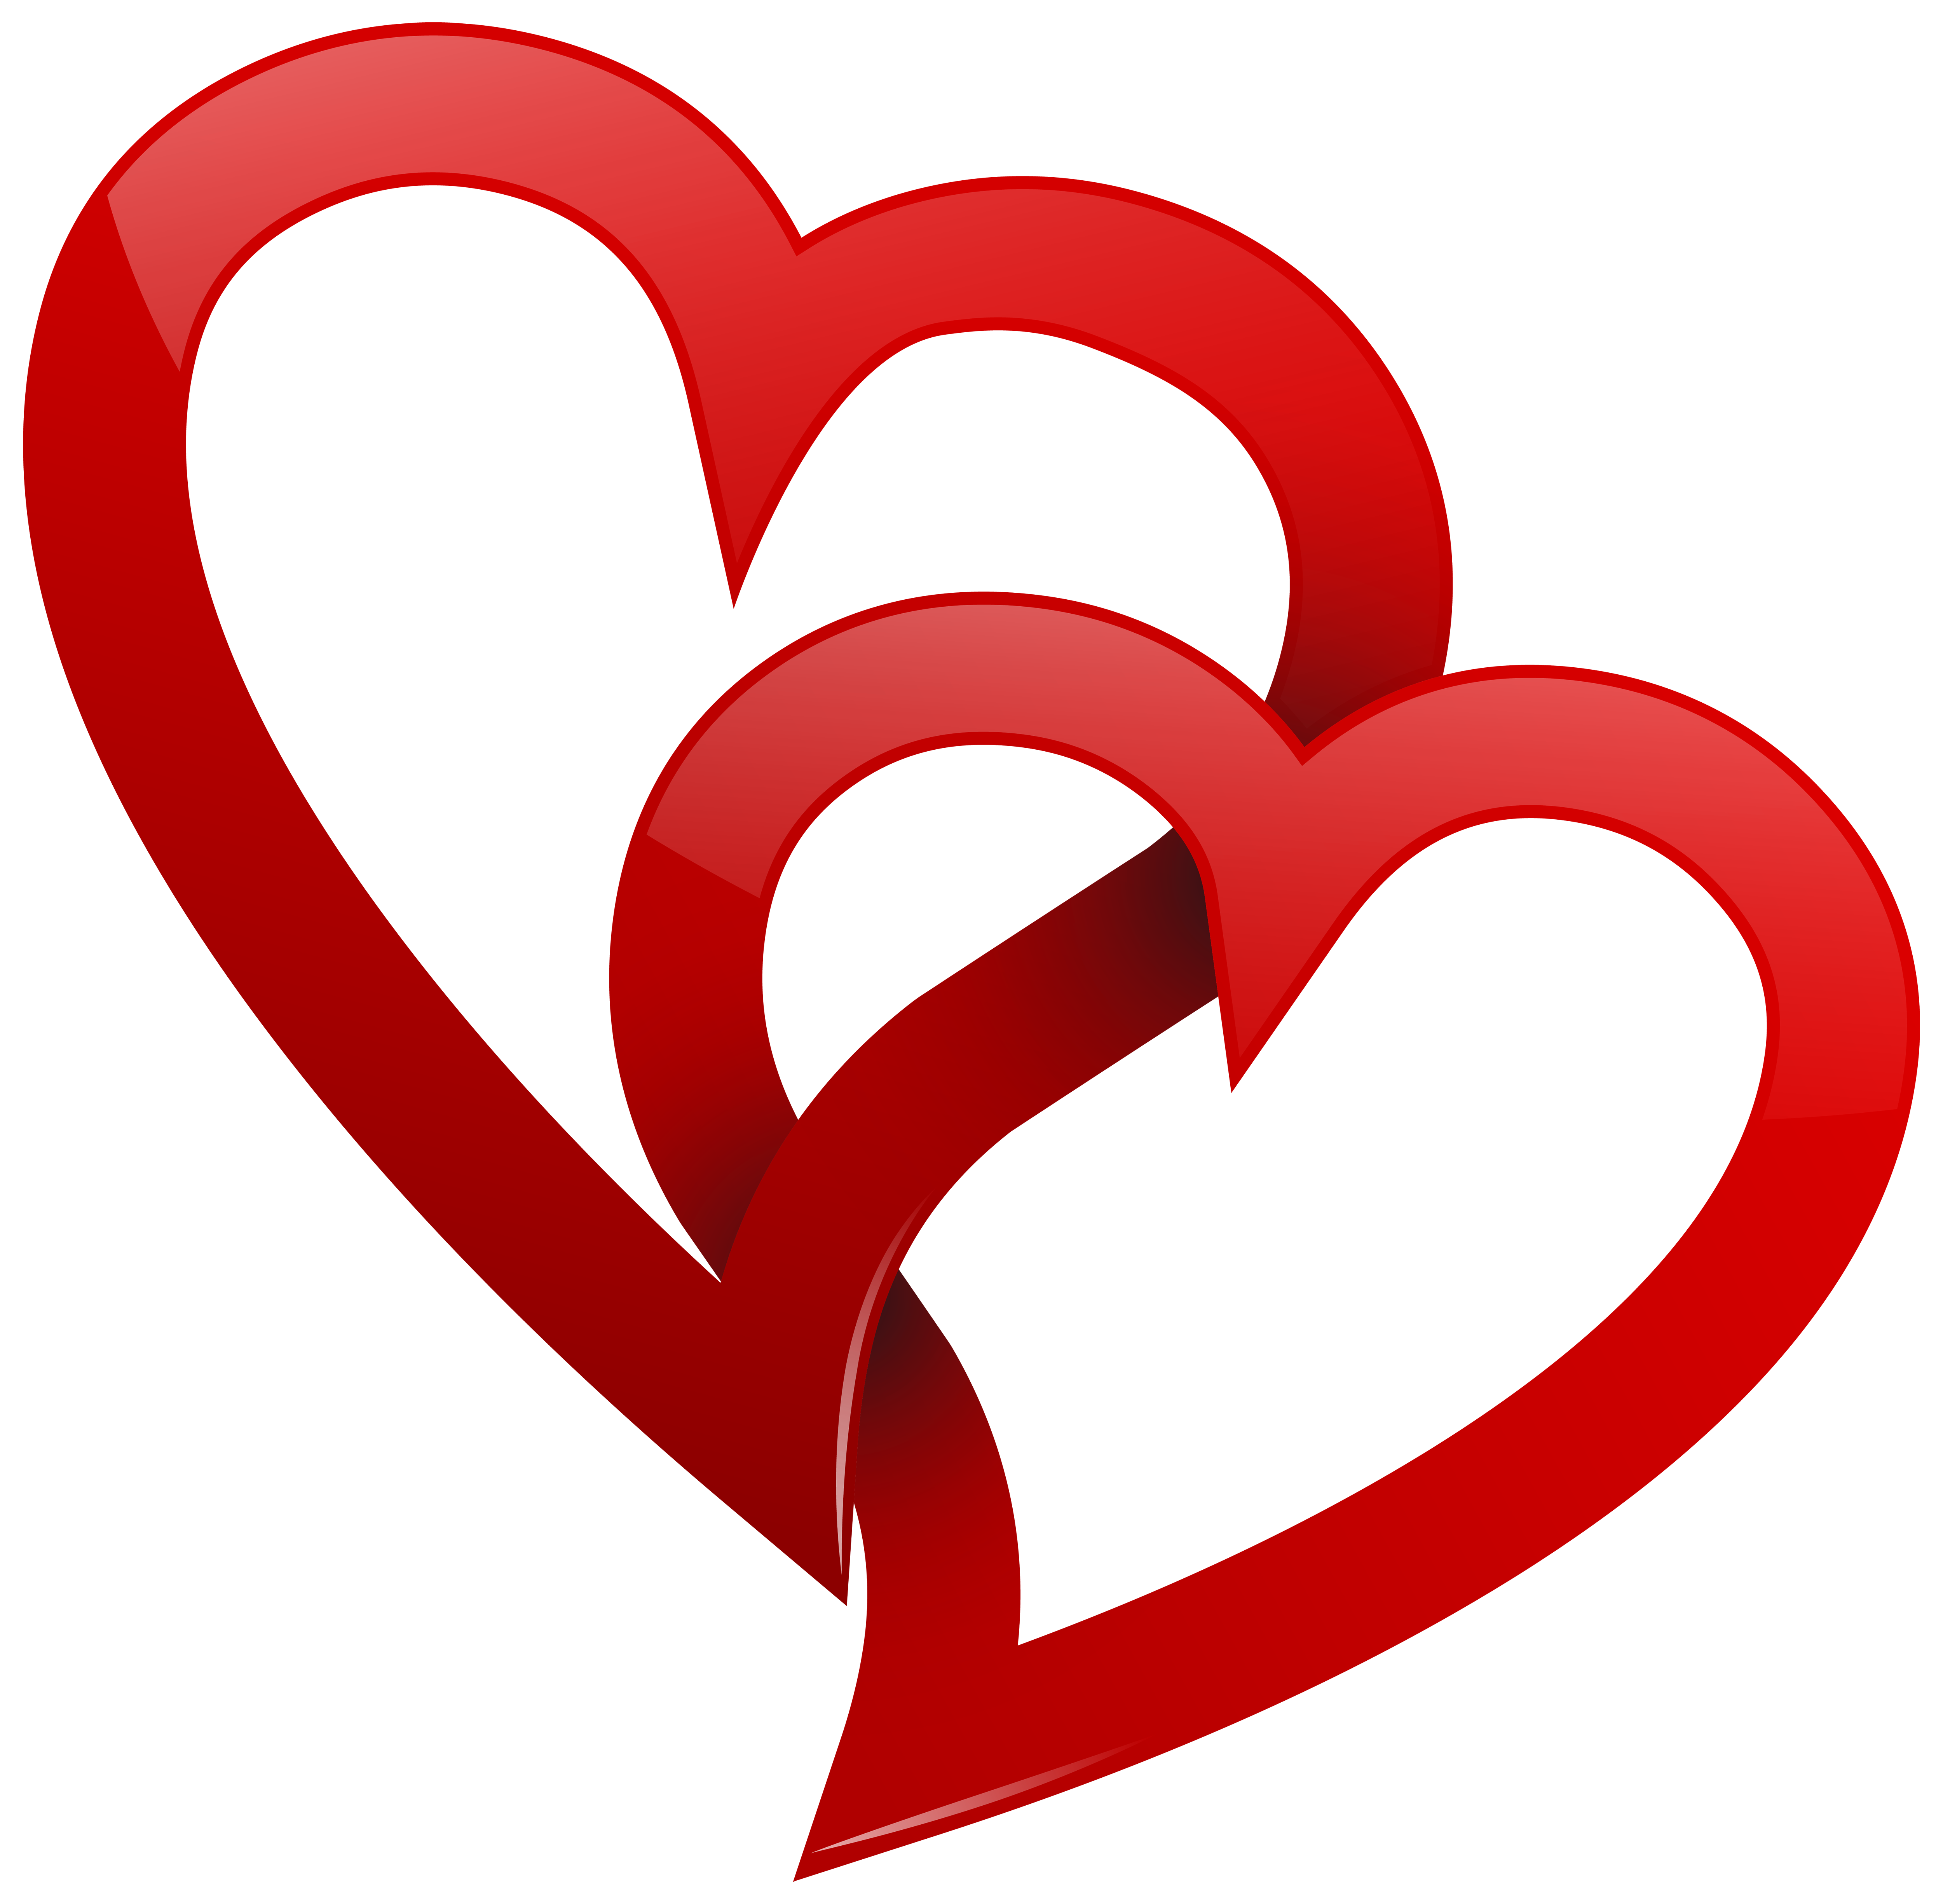 Two Red Hearts PNG Clipart.